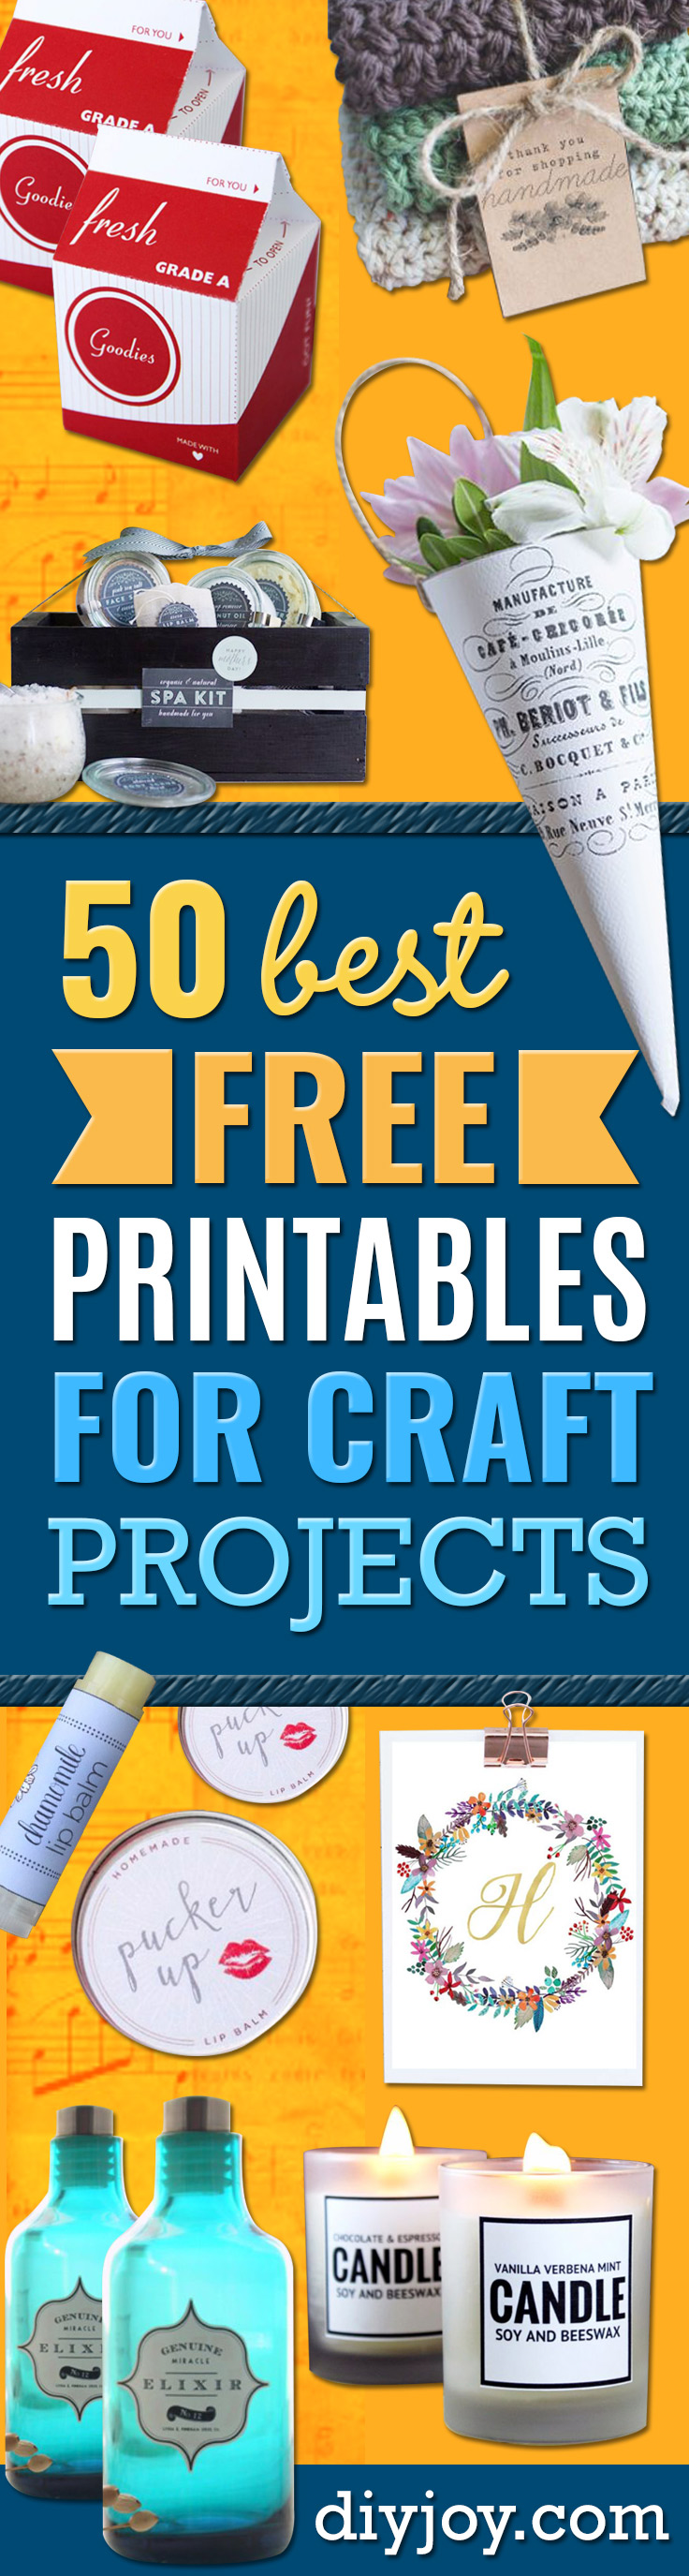 free printables for crafts ideas- Quotes, Templates, Paper Projects and Cards, DIY Gifts Cards, Stickers and Wall Art You Can Print At Home - Use These Fun Do It Yourself Template and Craft Ideas for Your Next Craft Projects - Cute Arts and Crafts Ideas for Kids and Adults to Make on Printer / Printable